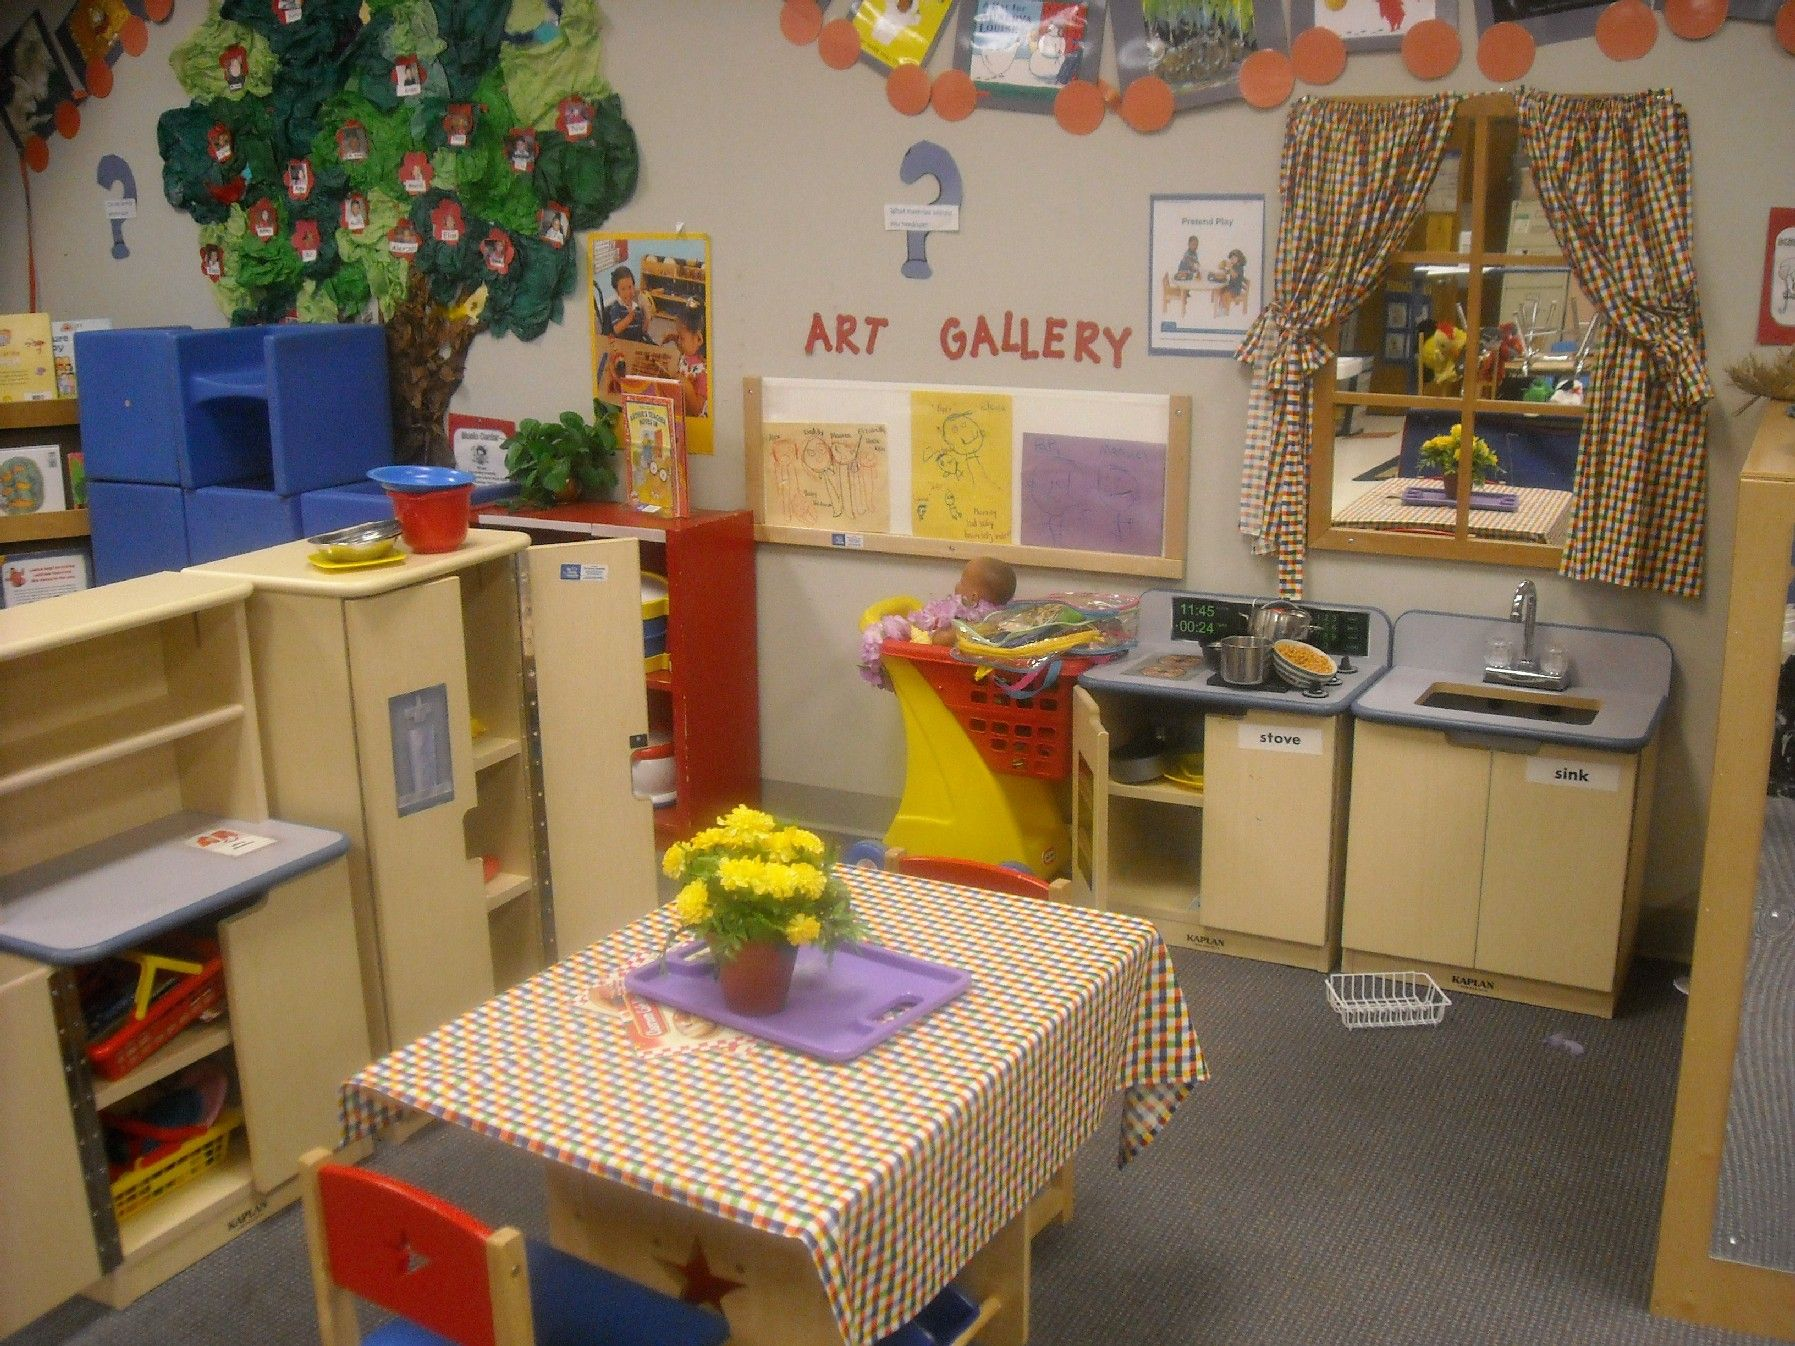 Best paint colors for preschool classrooms - Find This Pin And More On Garderie Natural Environment Kids Playing Room Decoration In Kindergarten Classroom Design Ideas